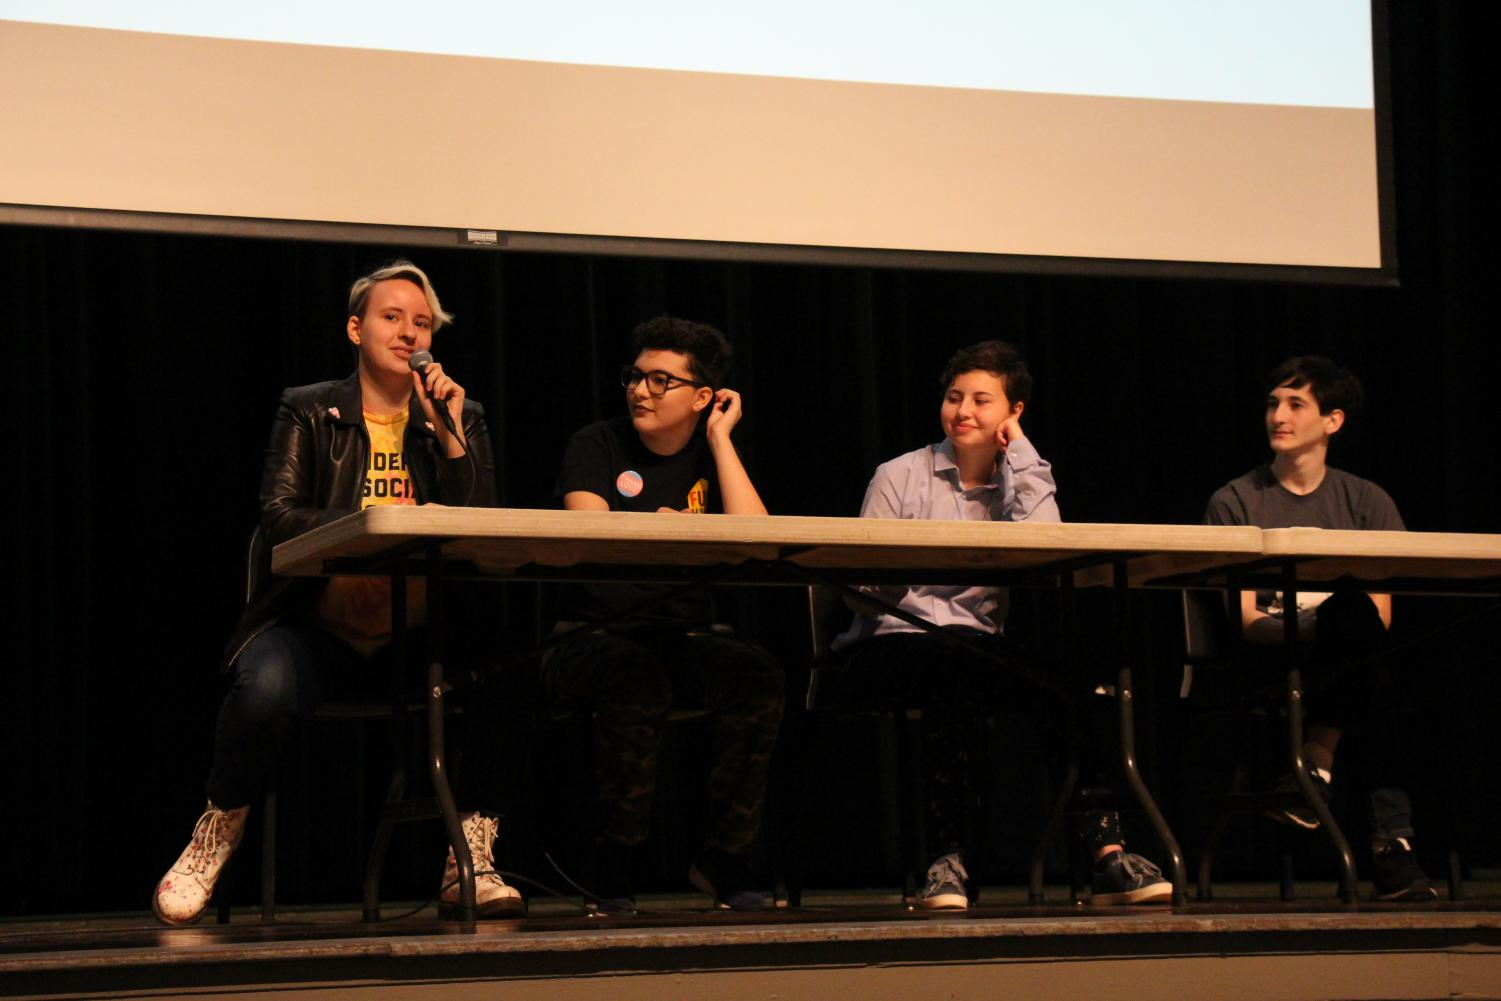 From left to right, panelists freshmen Bird Kindall, Alex Bunis and Katherine/Steve O'Connor and senior Yoni Segal.